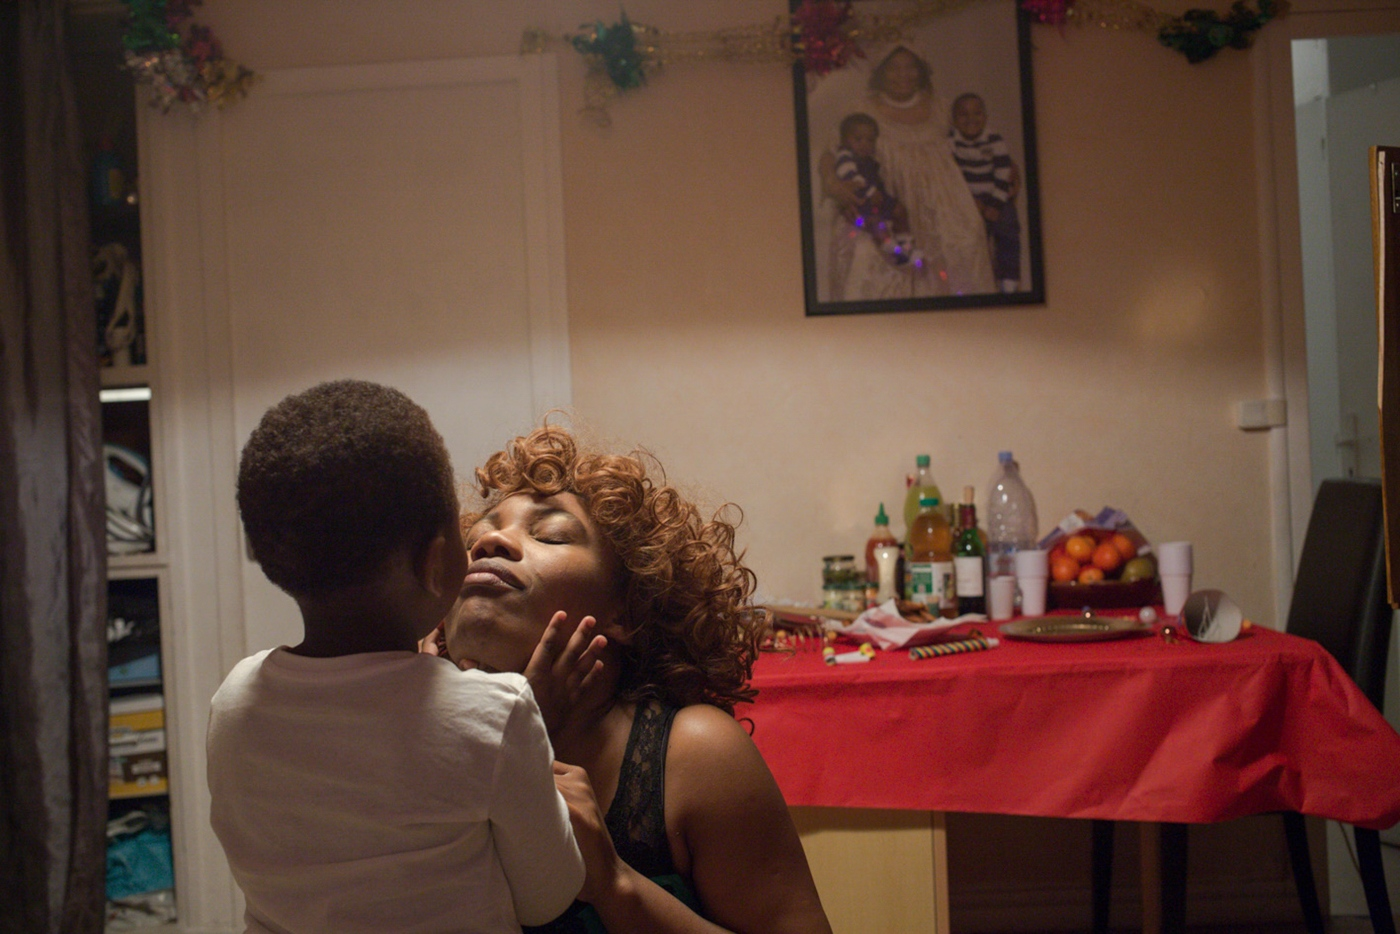 Corinne Kyoto-Sy kissing her son, Kesyah, during New Years' Eve in Bondy, in the northern suburbs of Paris. Corinne is a caregiver. By this moment, single mother and living with her mother in Bondy village.